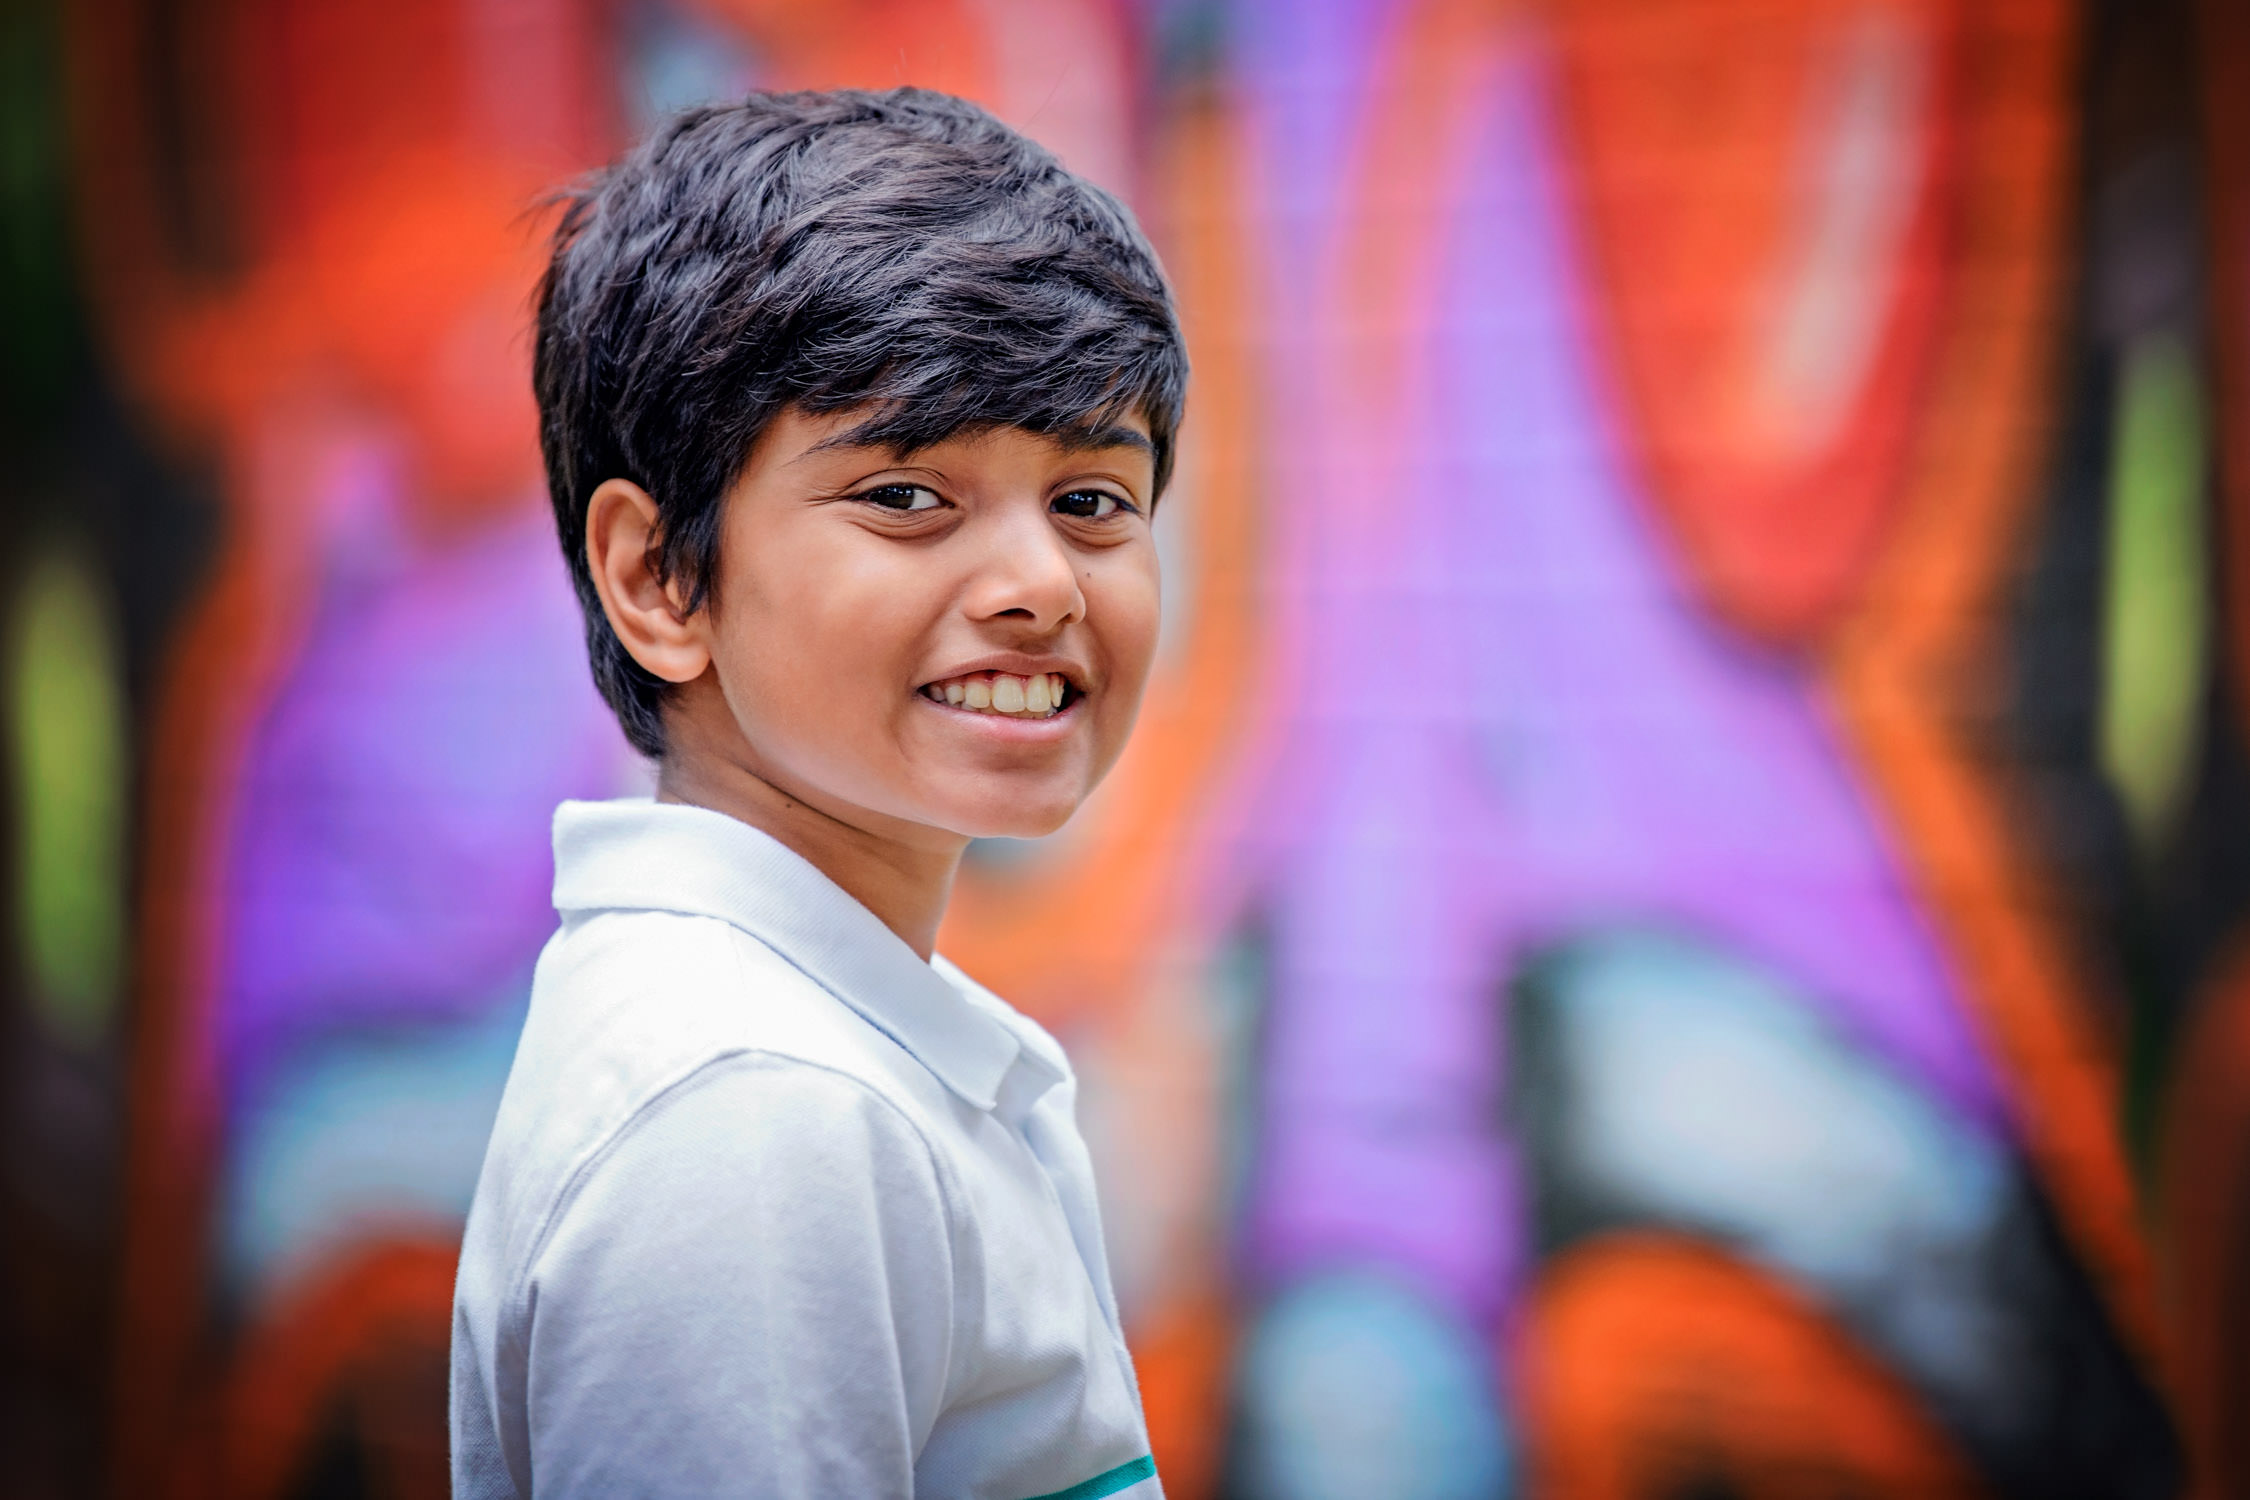 Boy standing in front of colourful grafitti